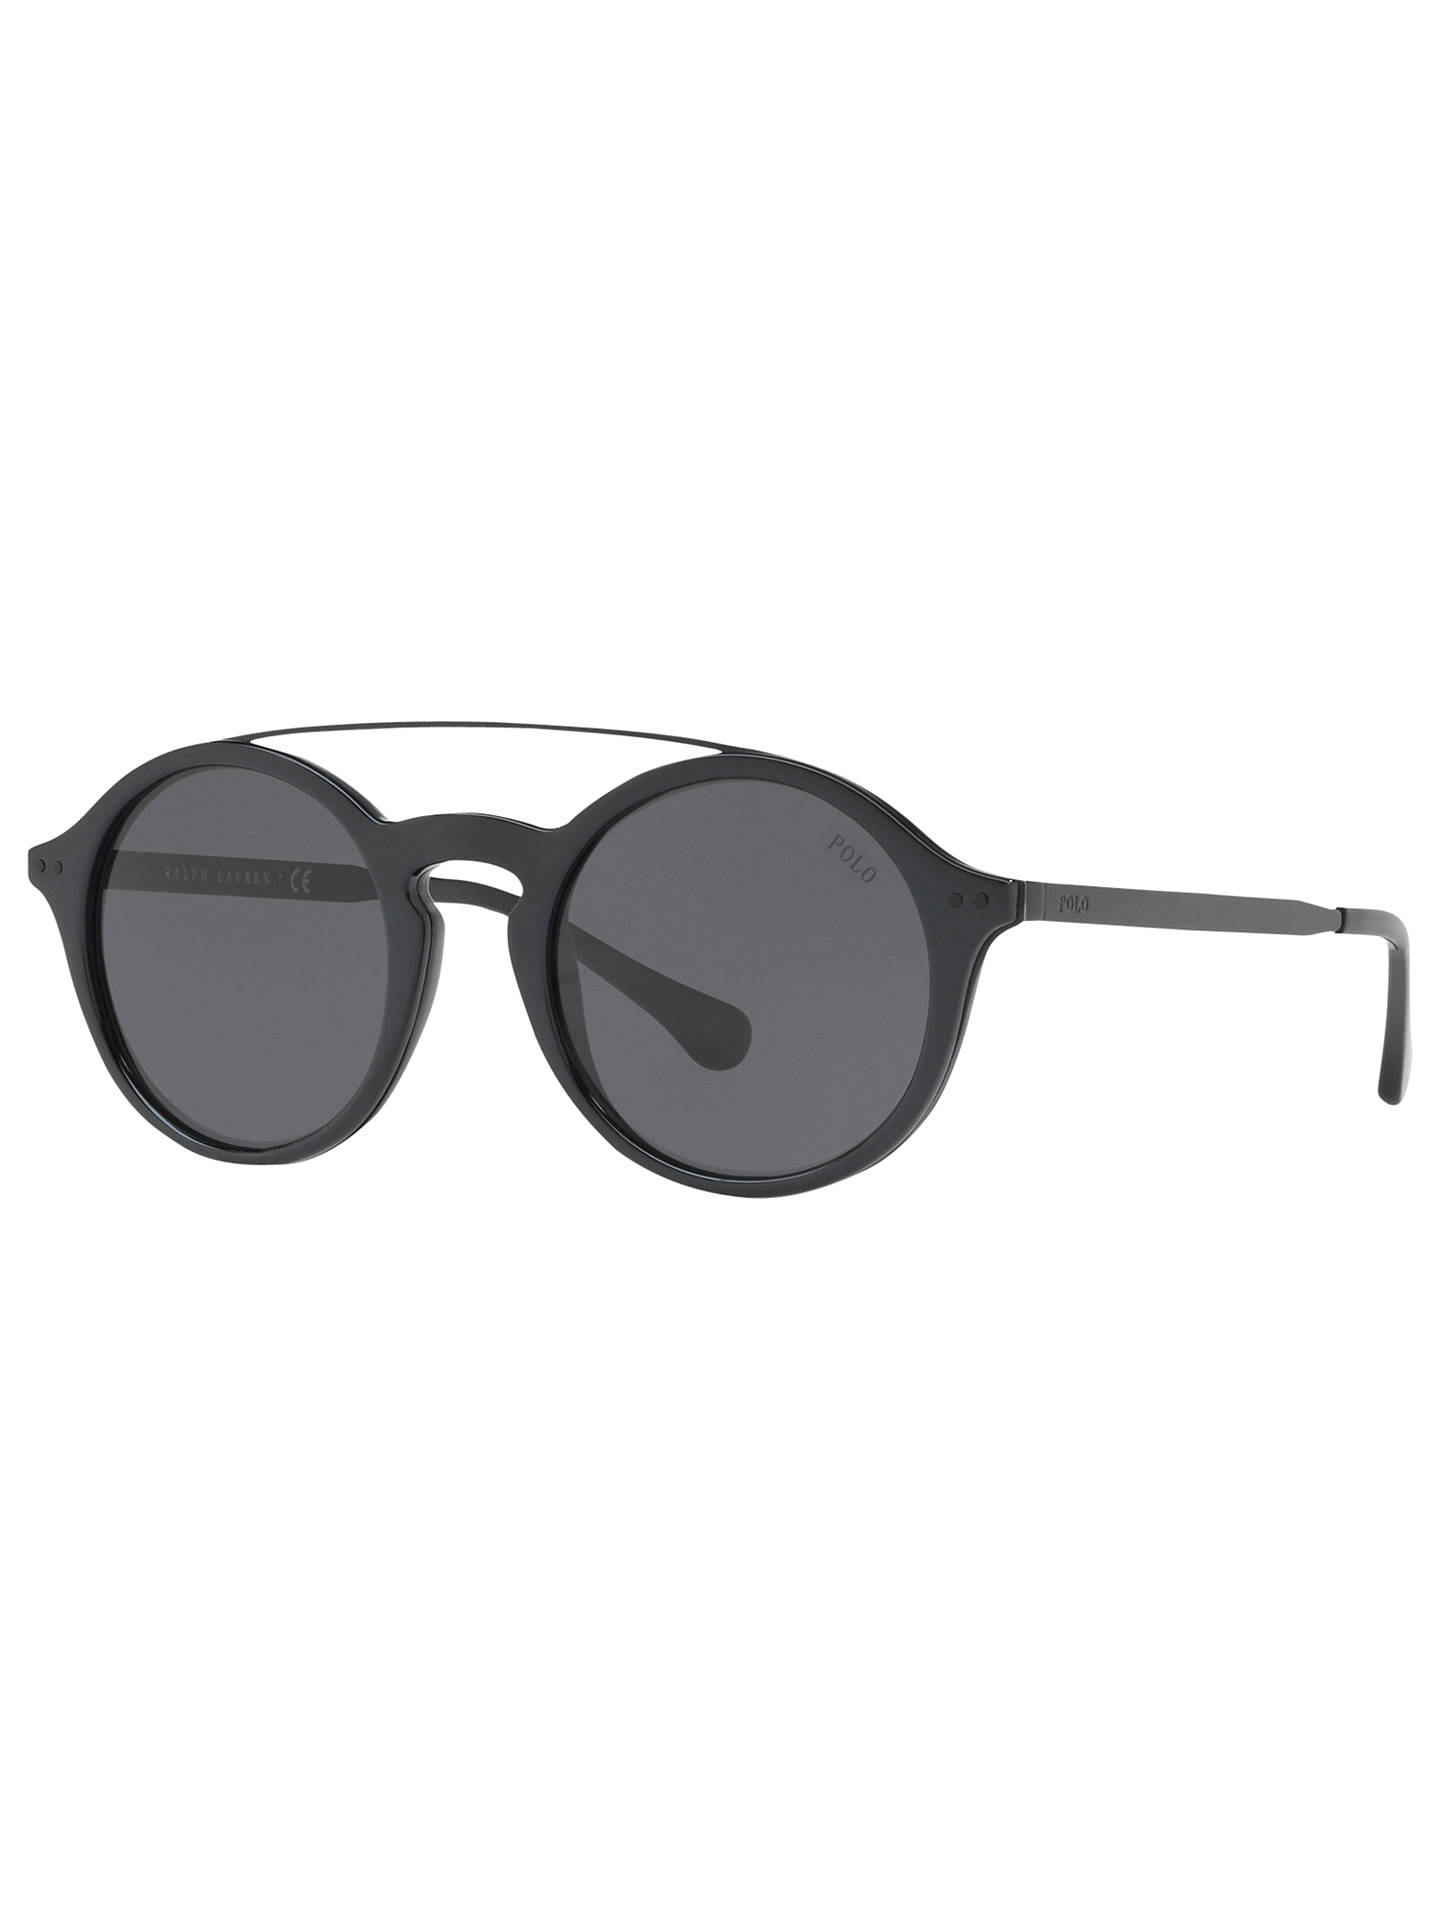 e5655061c64 Polo Ralph Lauren PH4122 Round Sunglasses at John Lewis   Partners